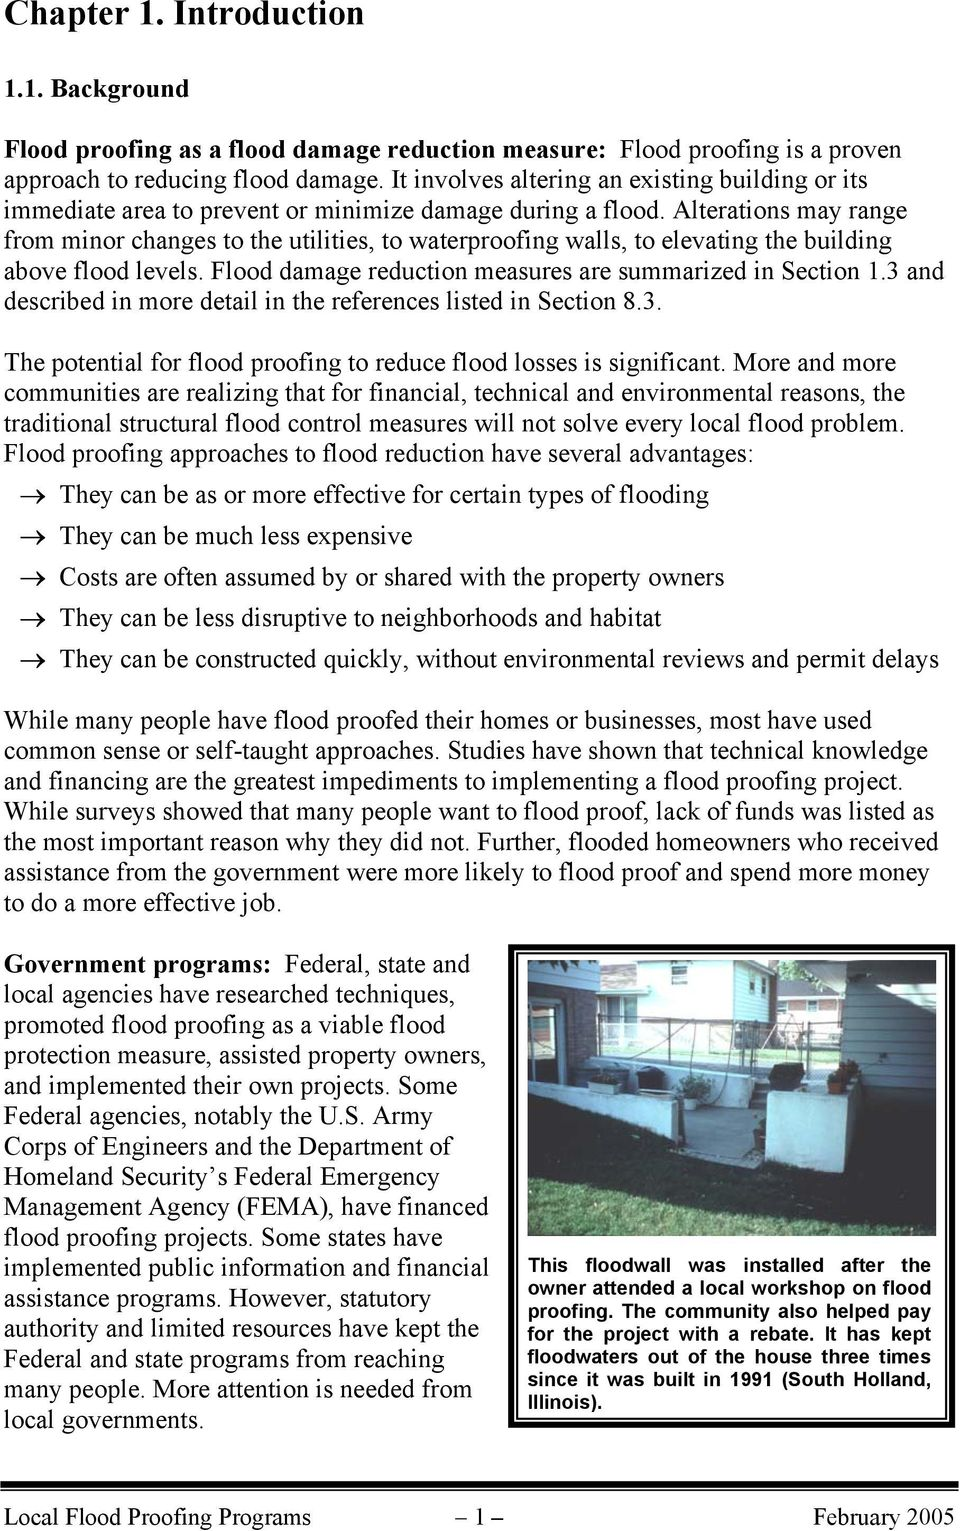 Alterations may range from minor changes to the utilities, to waterproofing walls, to elevating the building above flood levels. Flood damage reduction measures are summarized in Section 1.